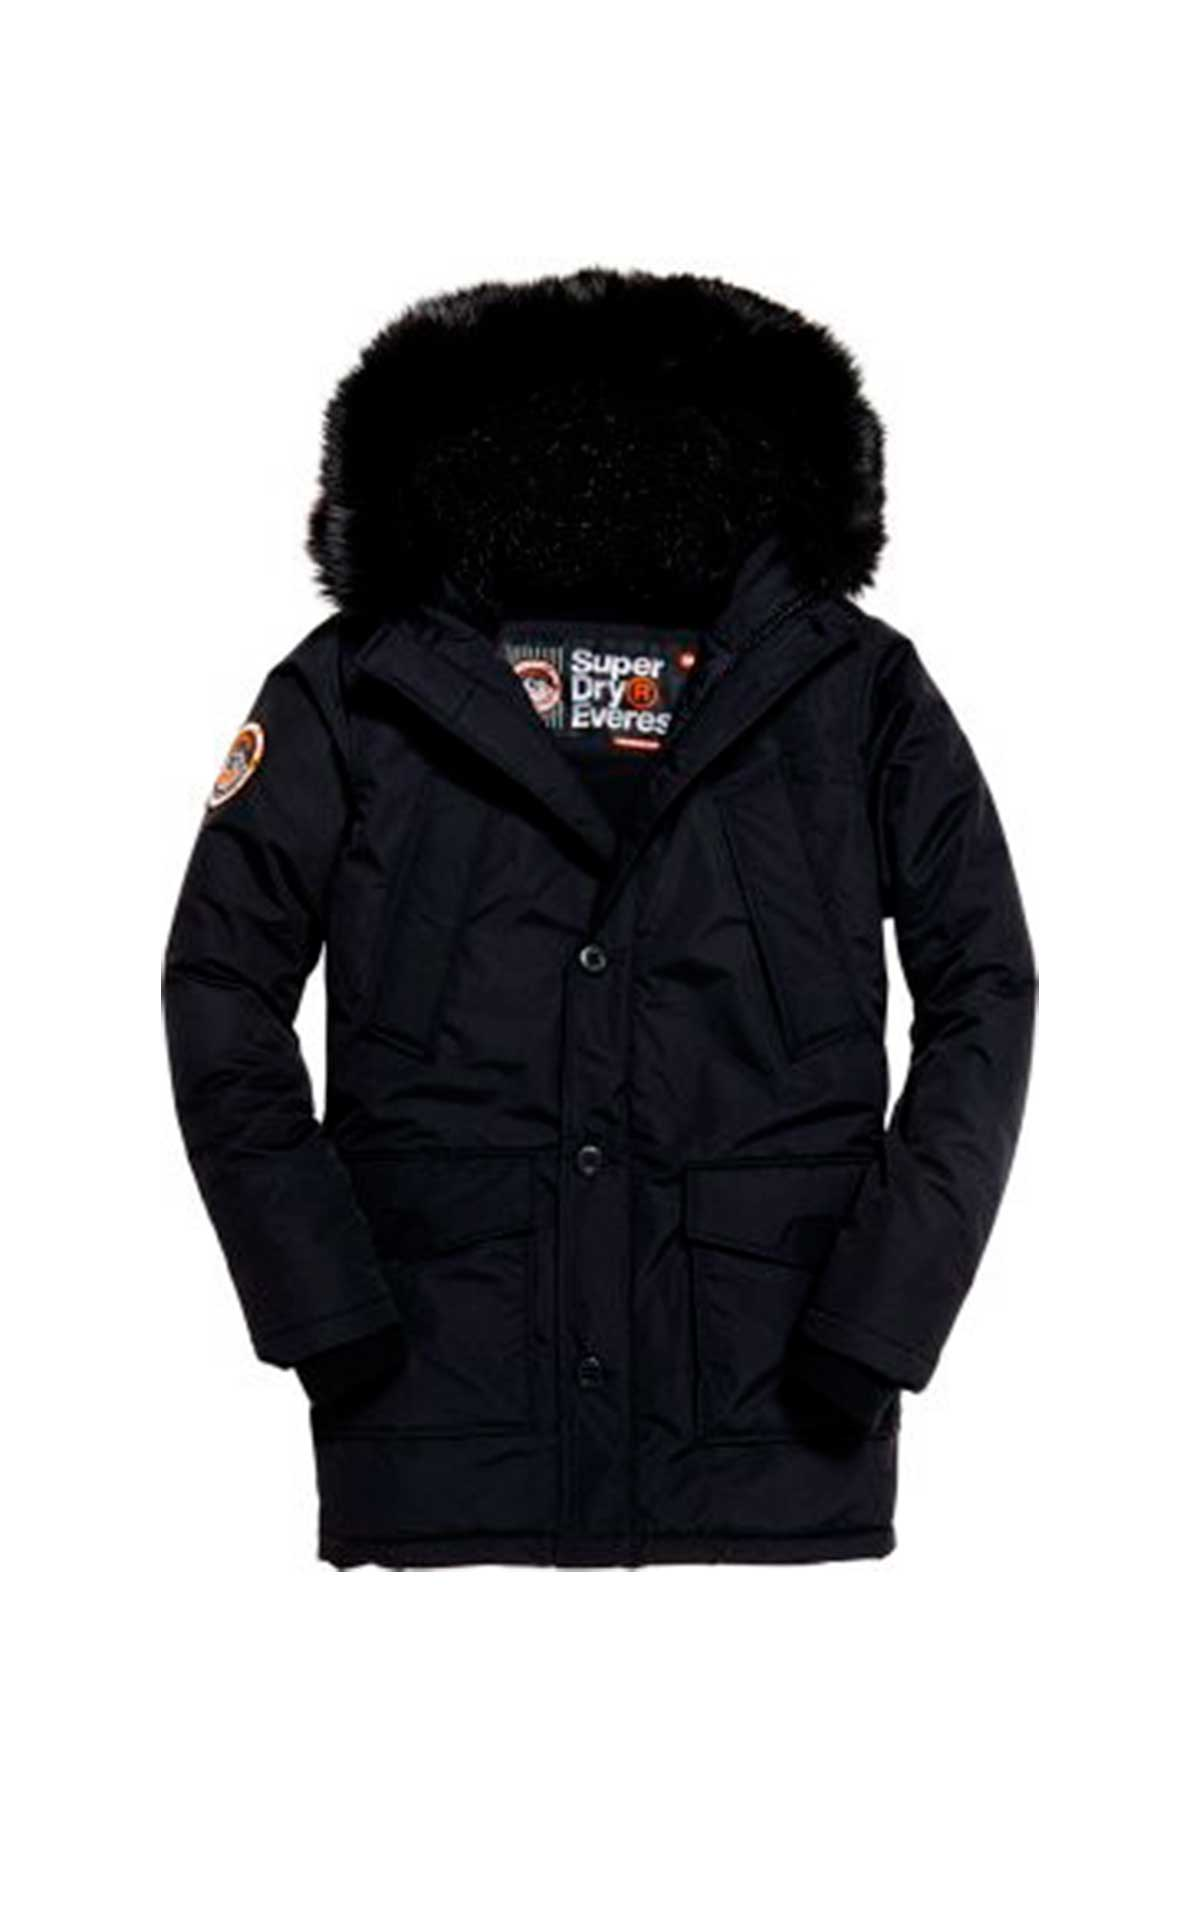 Black coat Superdry